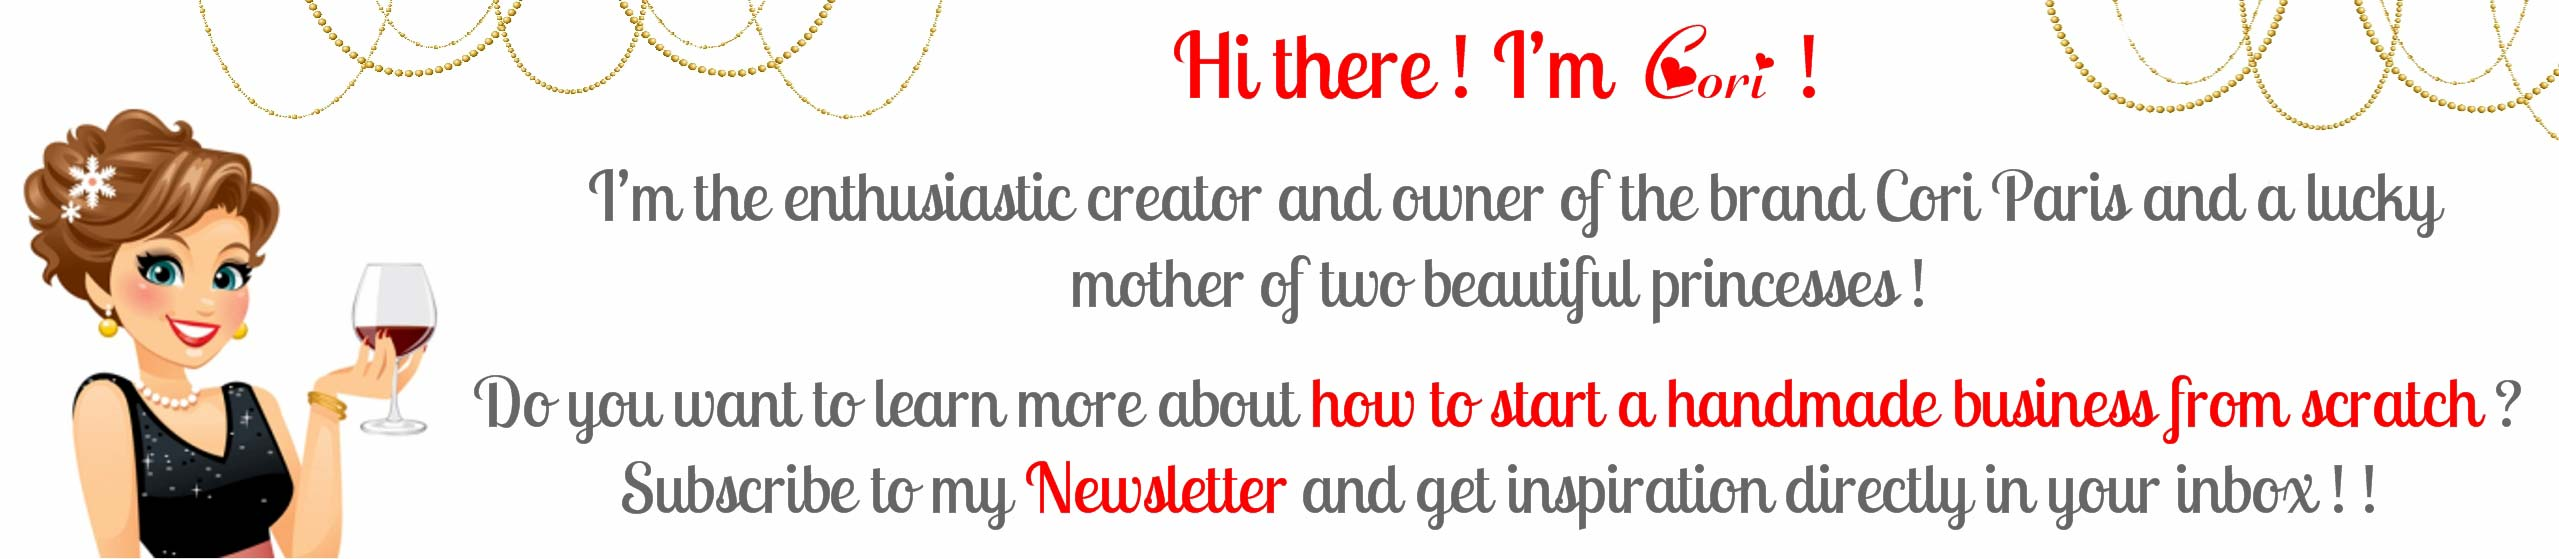 Subscribe to my Newsletter to get updates about the latest posts on my business blog on coriparis.com !